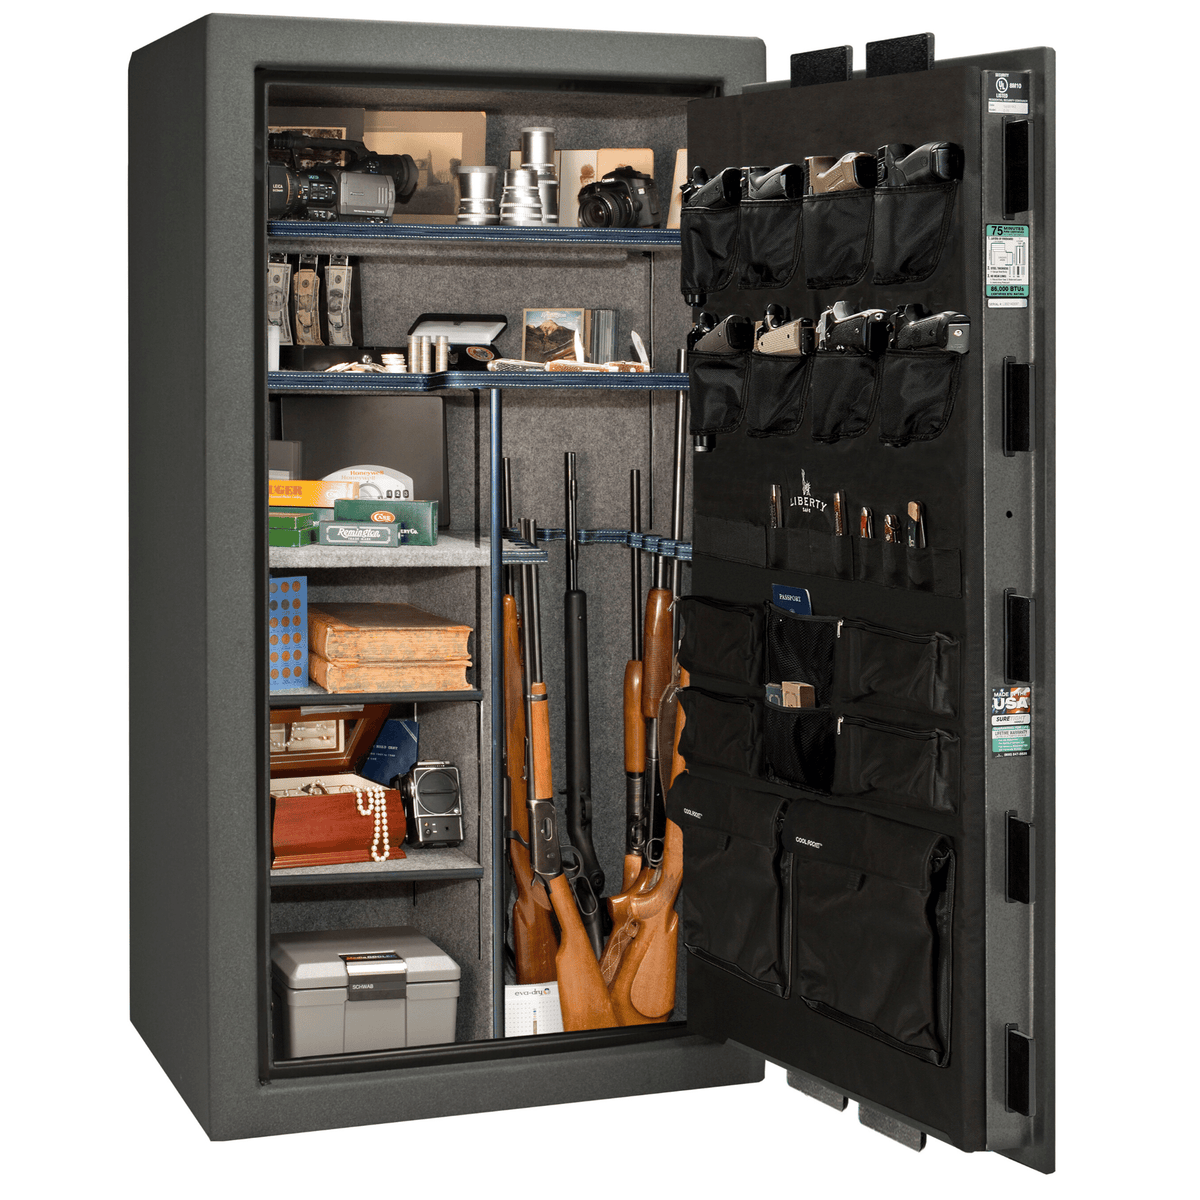 "Franklin Series | Level 4 Security | 90 Minute Fire Rating | 50 | DIMENSIONS: 72.5""(H) X 42""(W) X 32""(D) 